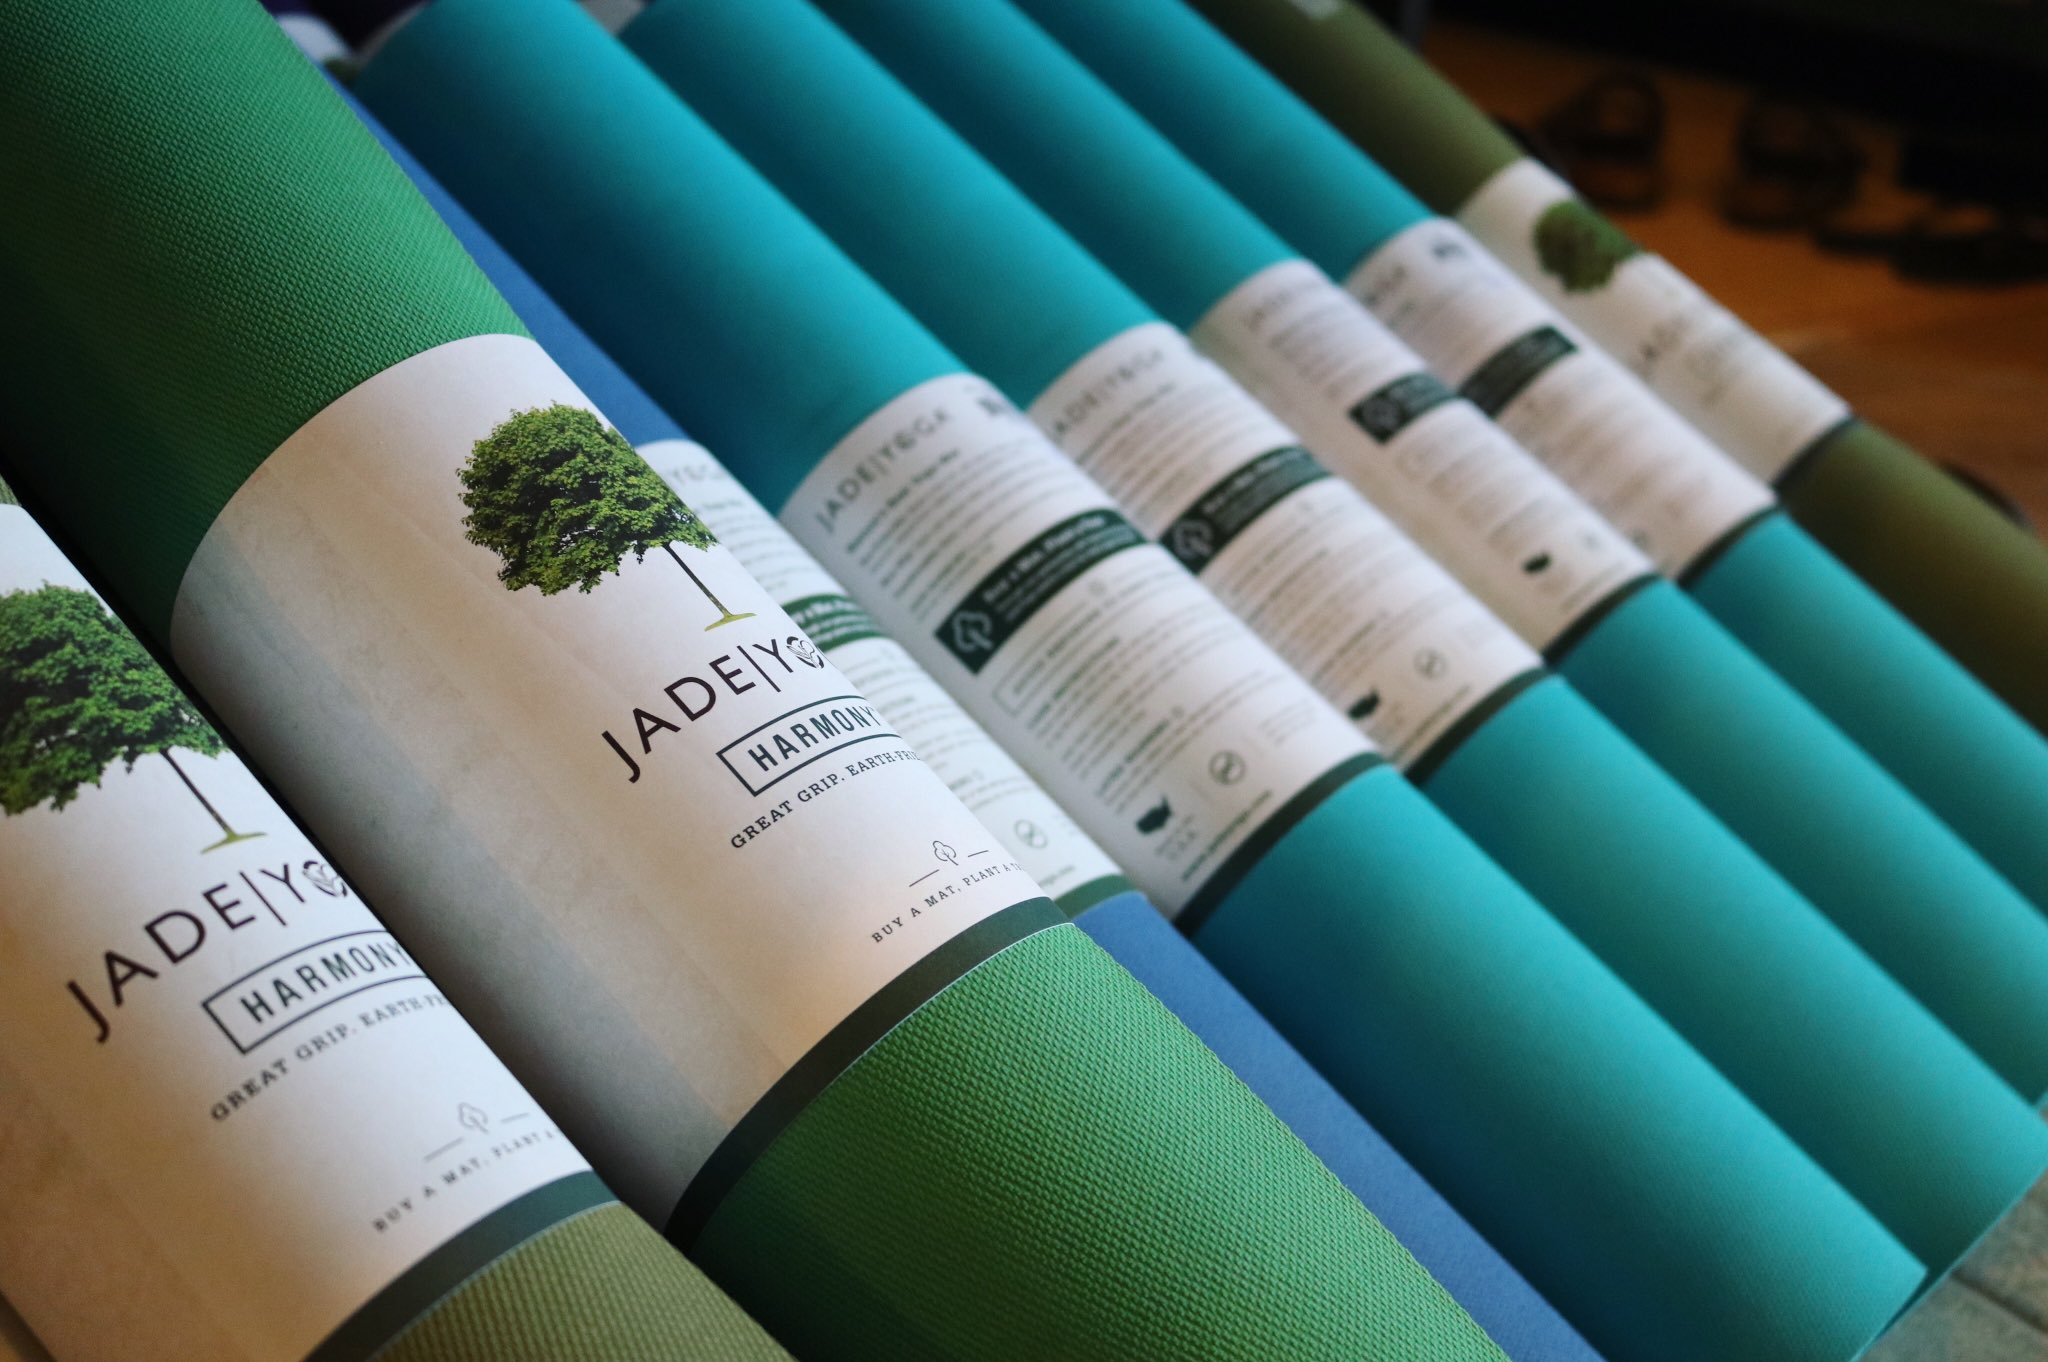 Yoga Bliss Akron On Twitter New Jade Yoga Mats Are In Available In All Sizes And Beautiful Colors Including Teal Jungle Green And Saffron